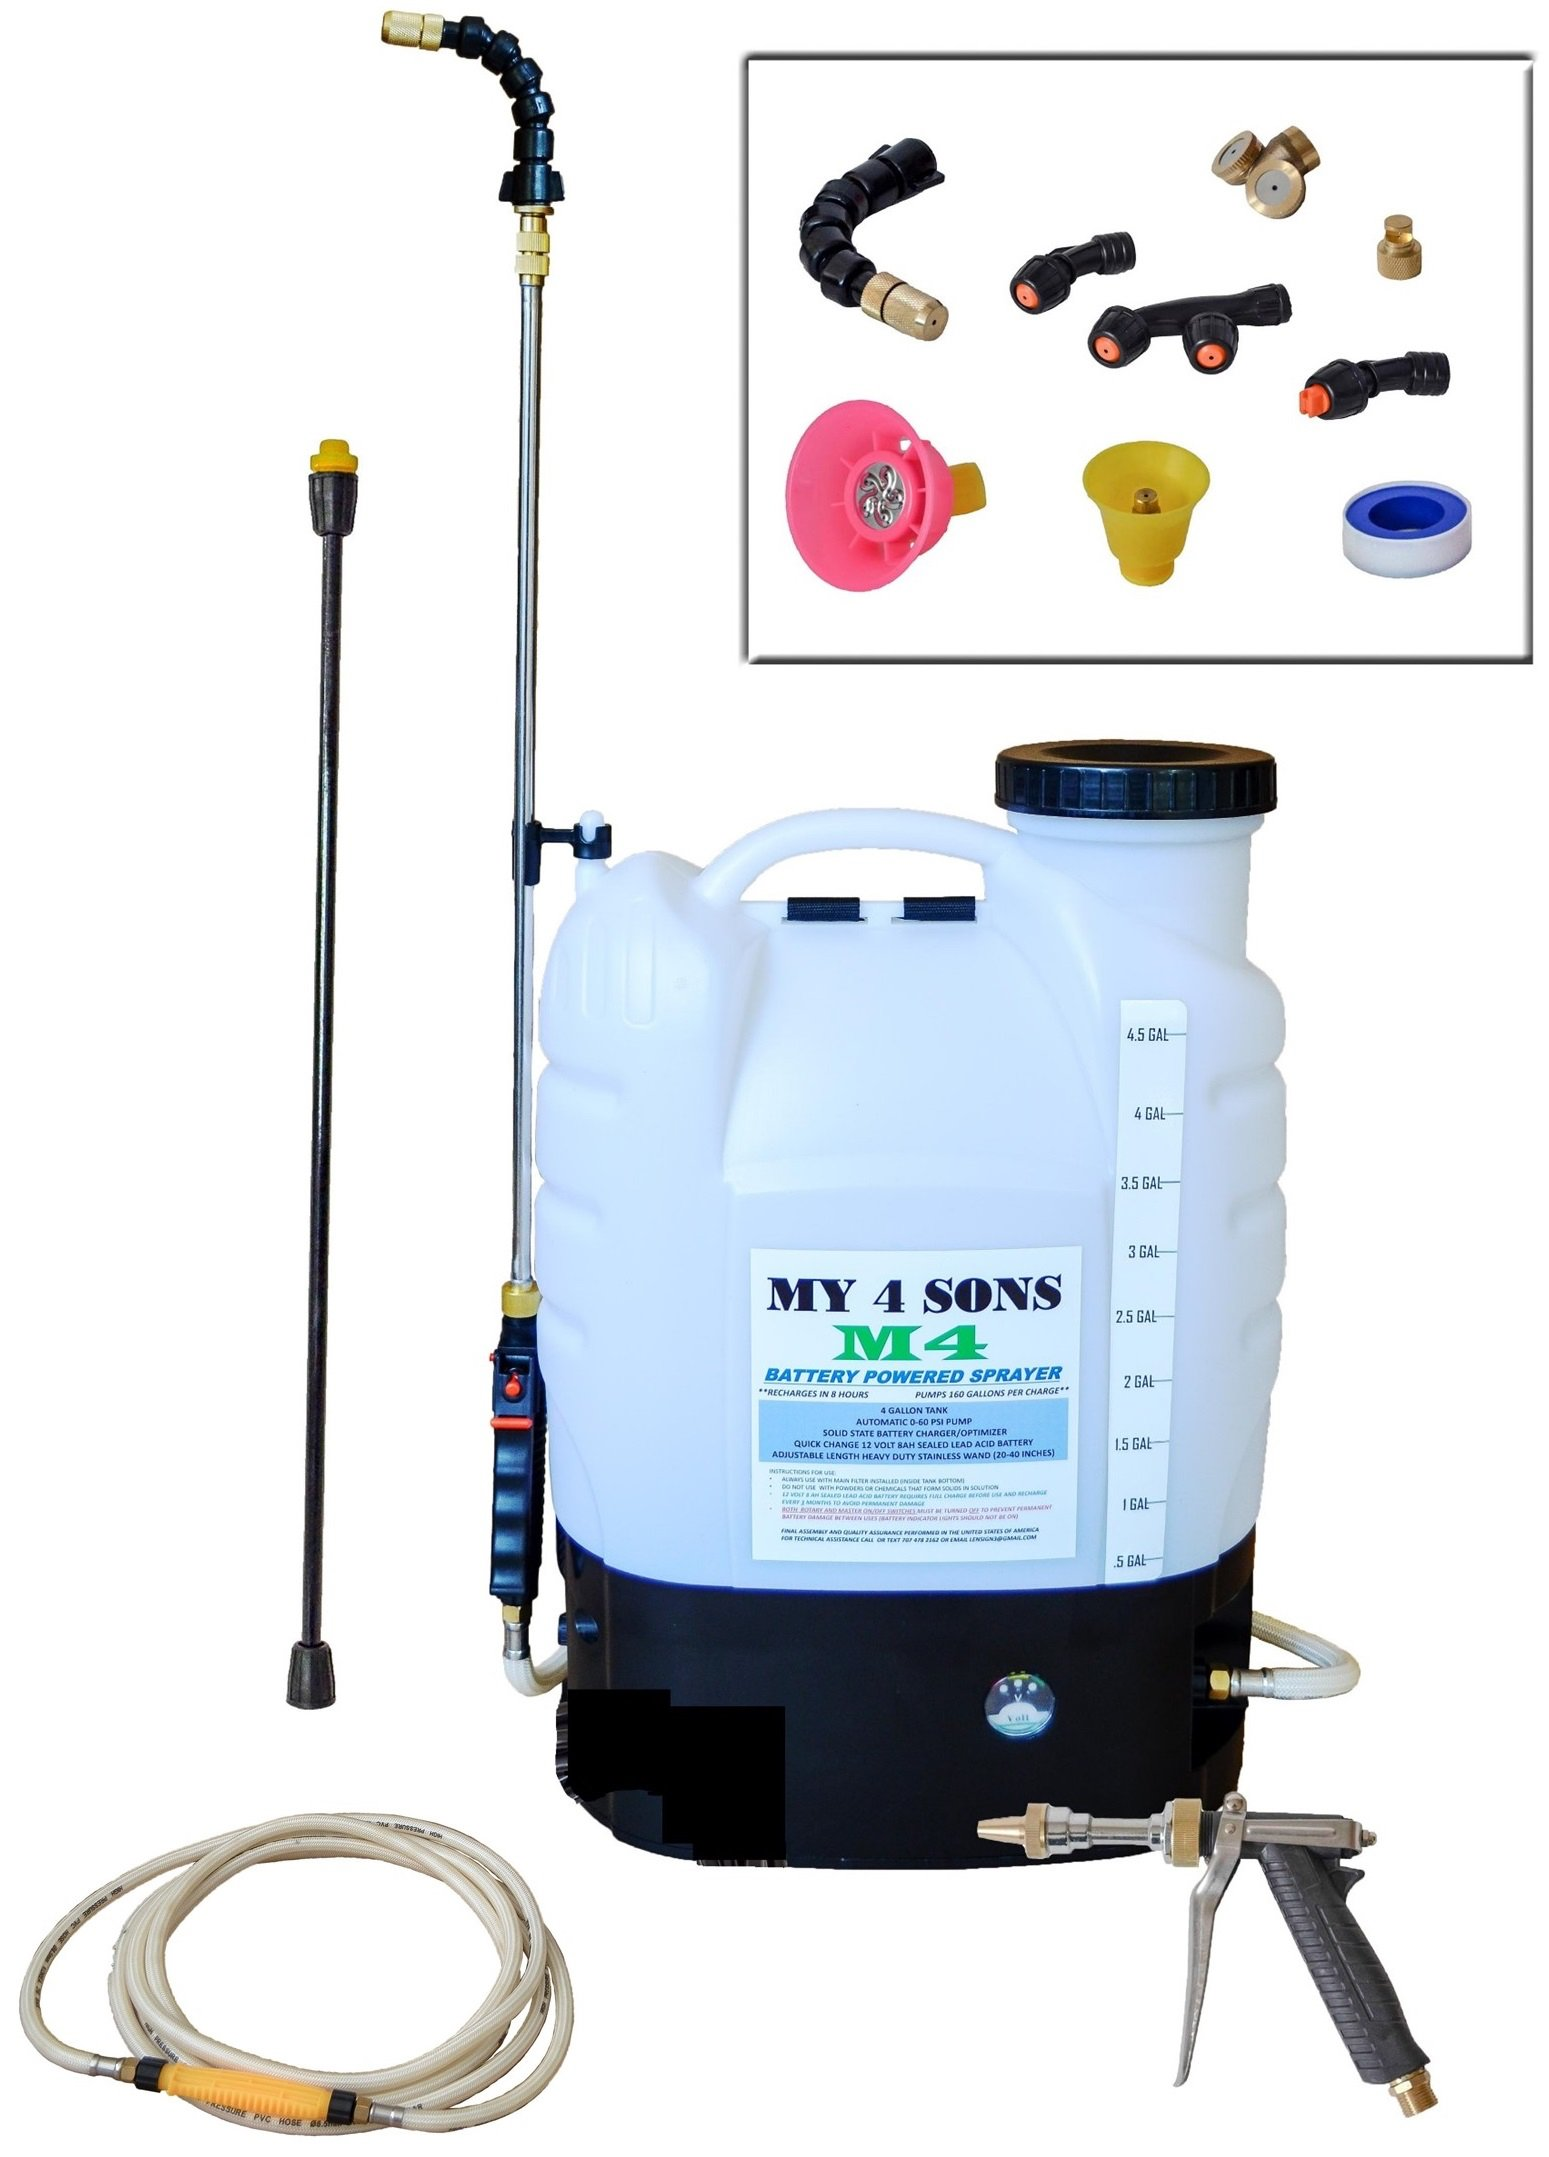 4-Gallon Battery Powered Backpack Sprayer With 0-60 PSI PRESSURE DIAL, ADJUSTABLE BRASS NOZZLE, AND 16-35 INCH STAINLESS HD WAND, ACID PLASTIC WAND, 15ft EXTENDED HOSE and SPRAY PISTOL by My 4 Sons